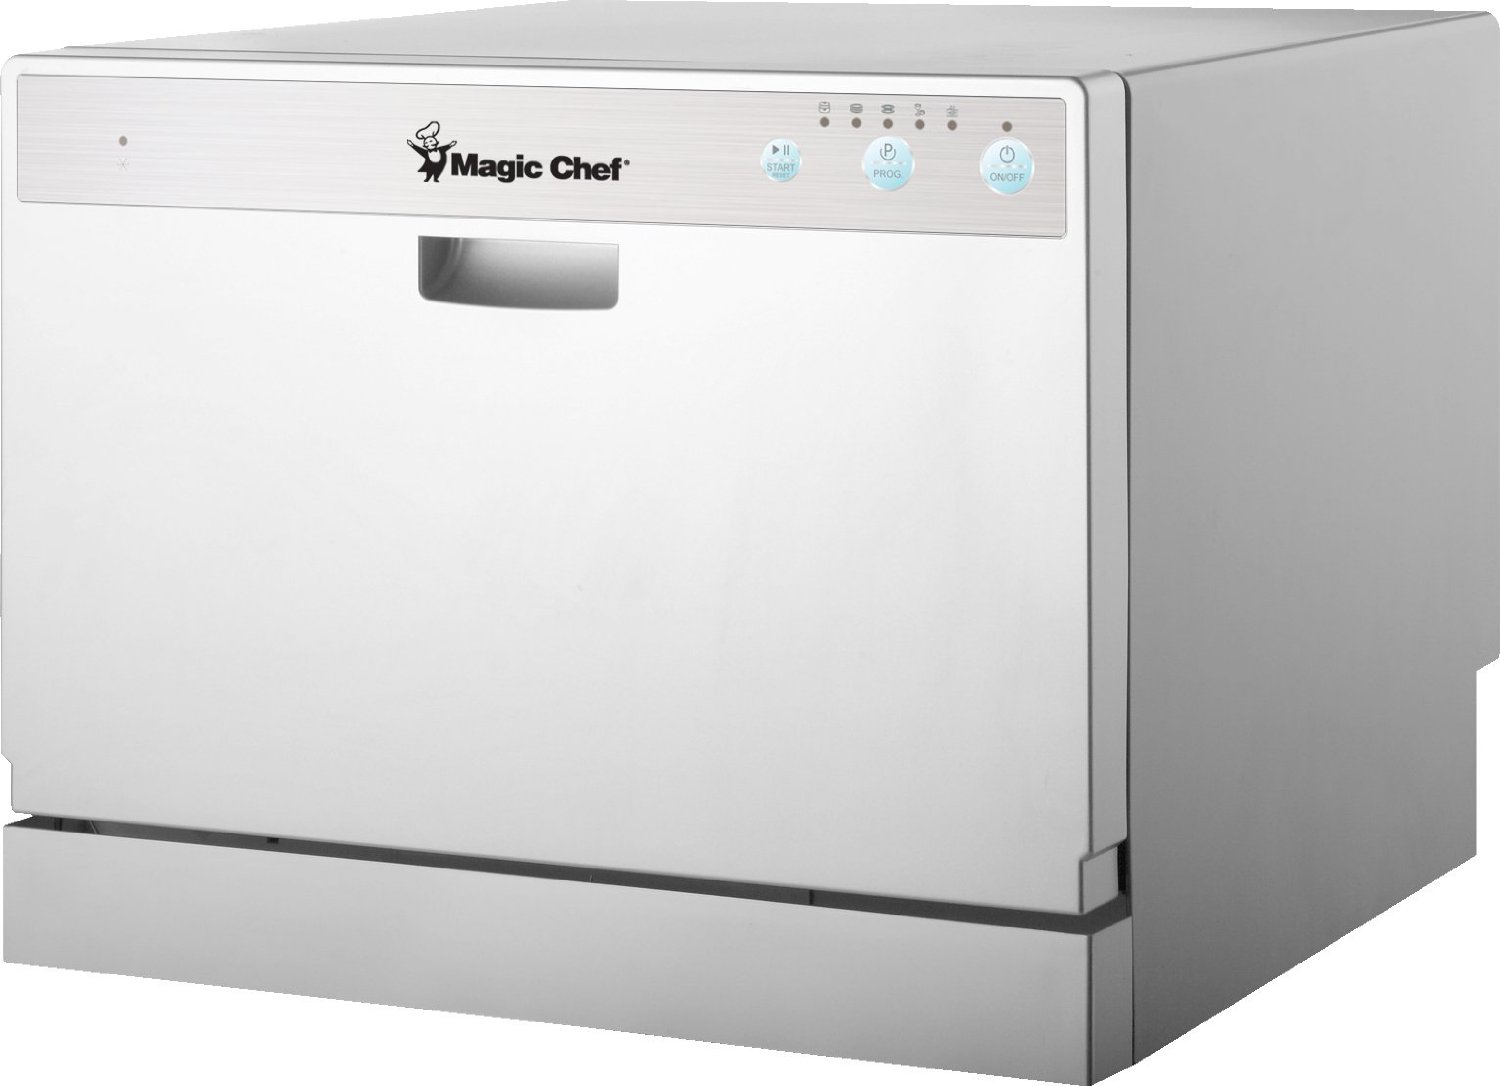 Avanti Countertop Dishwasher The Best Countertop Dishwasher Reviews And Ratings